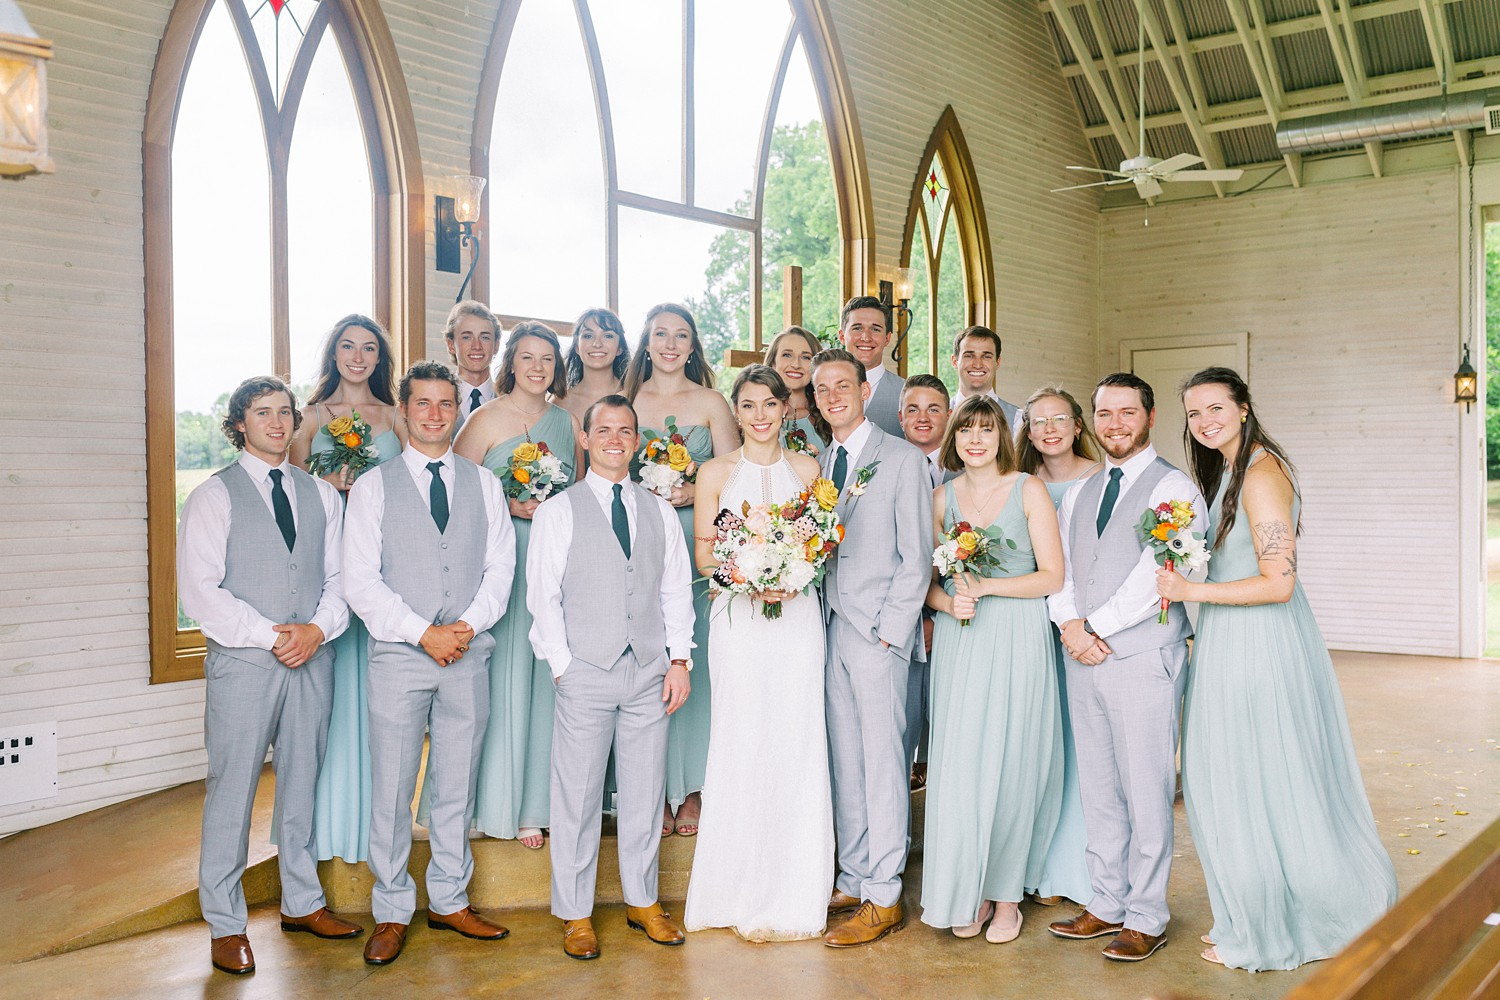 Wedding Party Photos | Intimate Wedding Ceremony | Summer Wedding Inspiration | Fort Worth Wedding Photographer | The Brooks at Weatherford